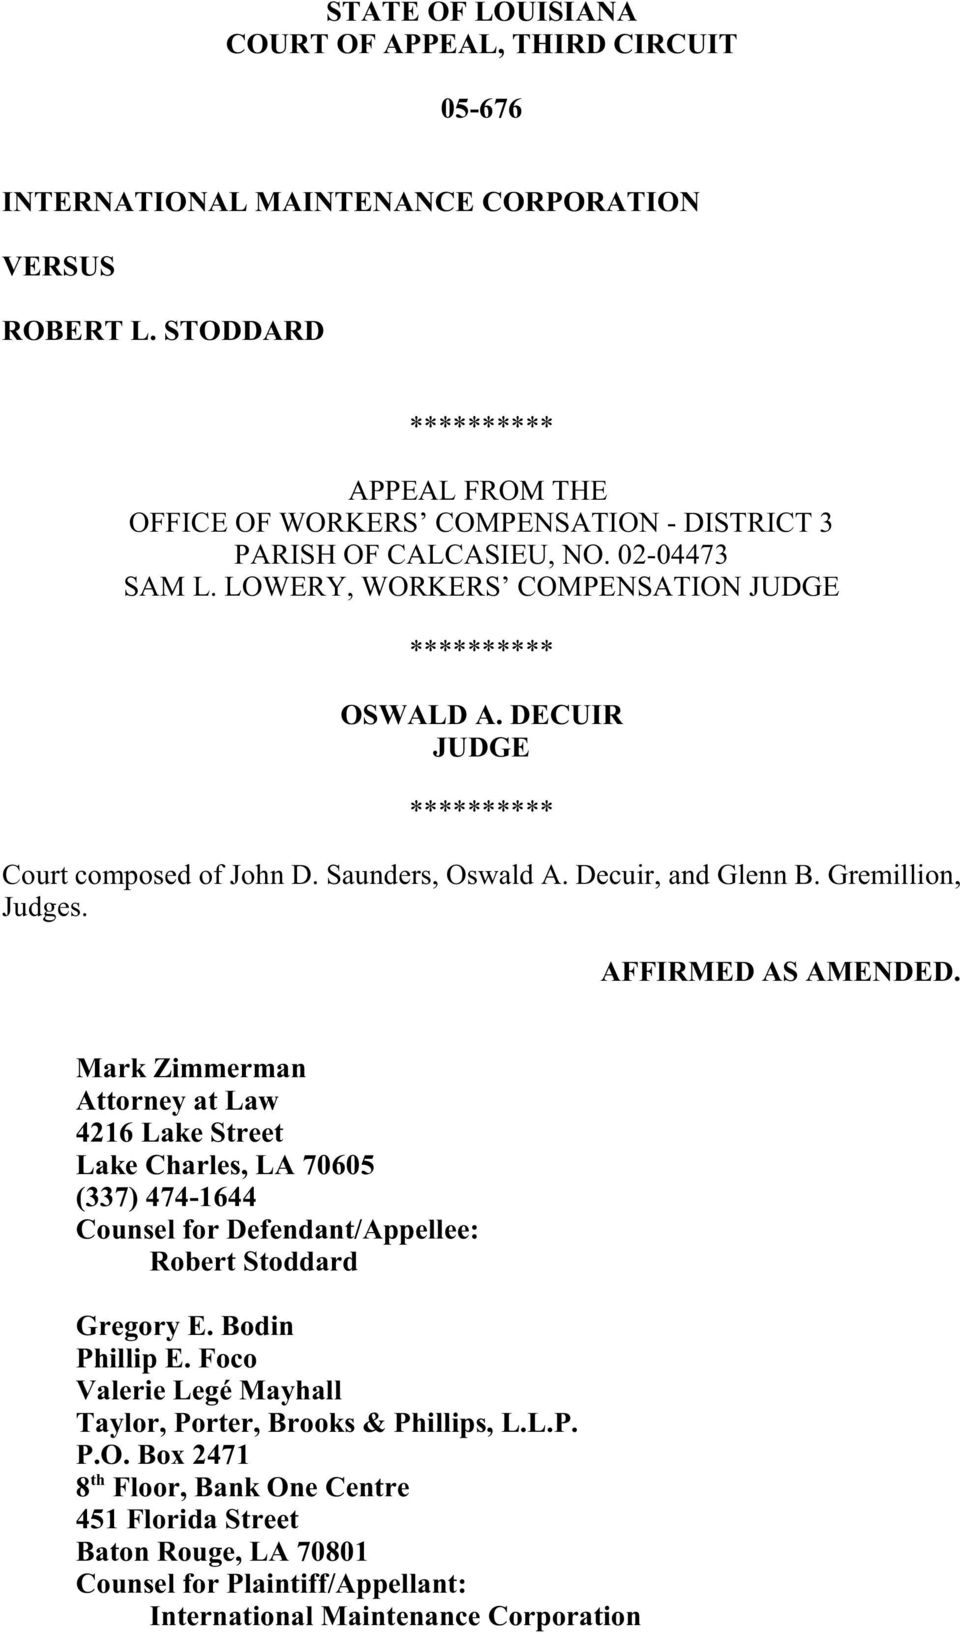 Saunders, Oswald A. Decuir, and Glenn B. Gremillion, Judges. AFFIRMED AS AMENDED.